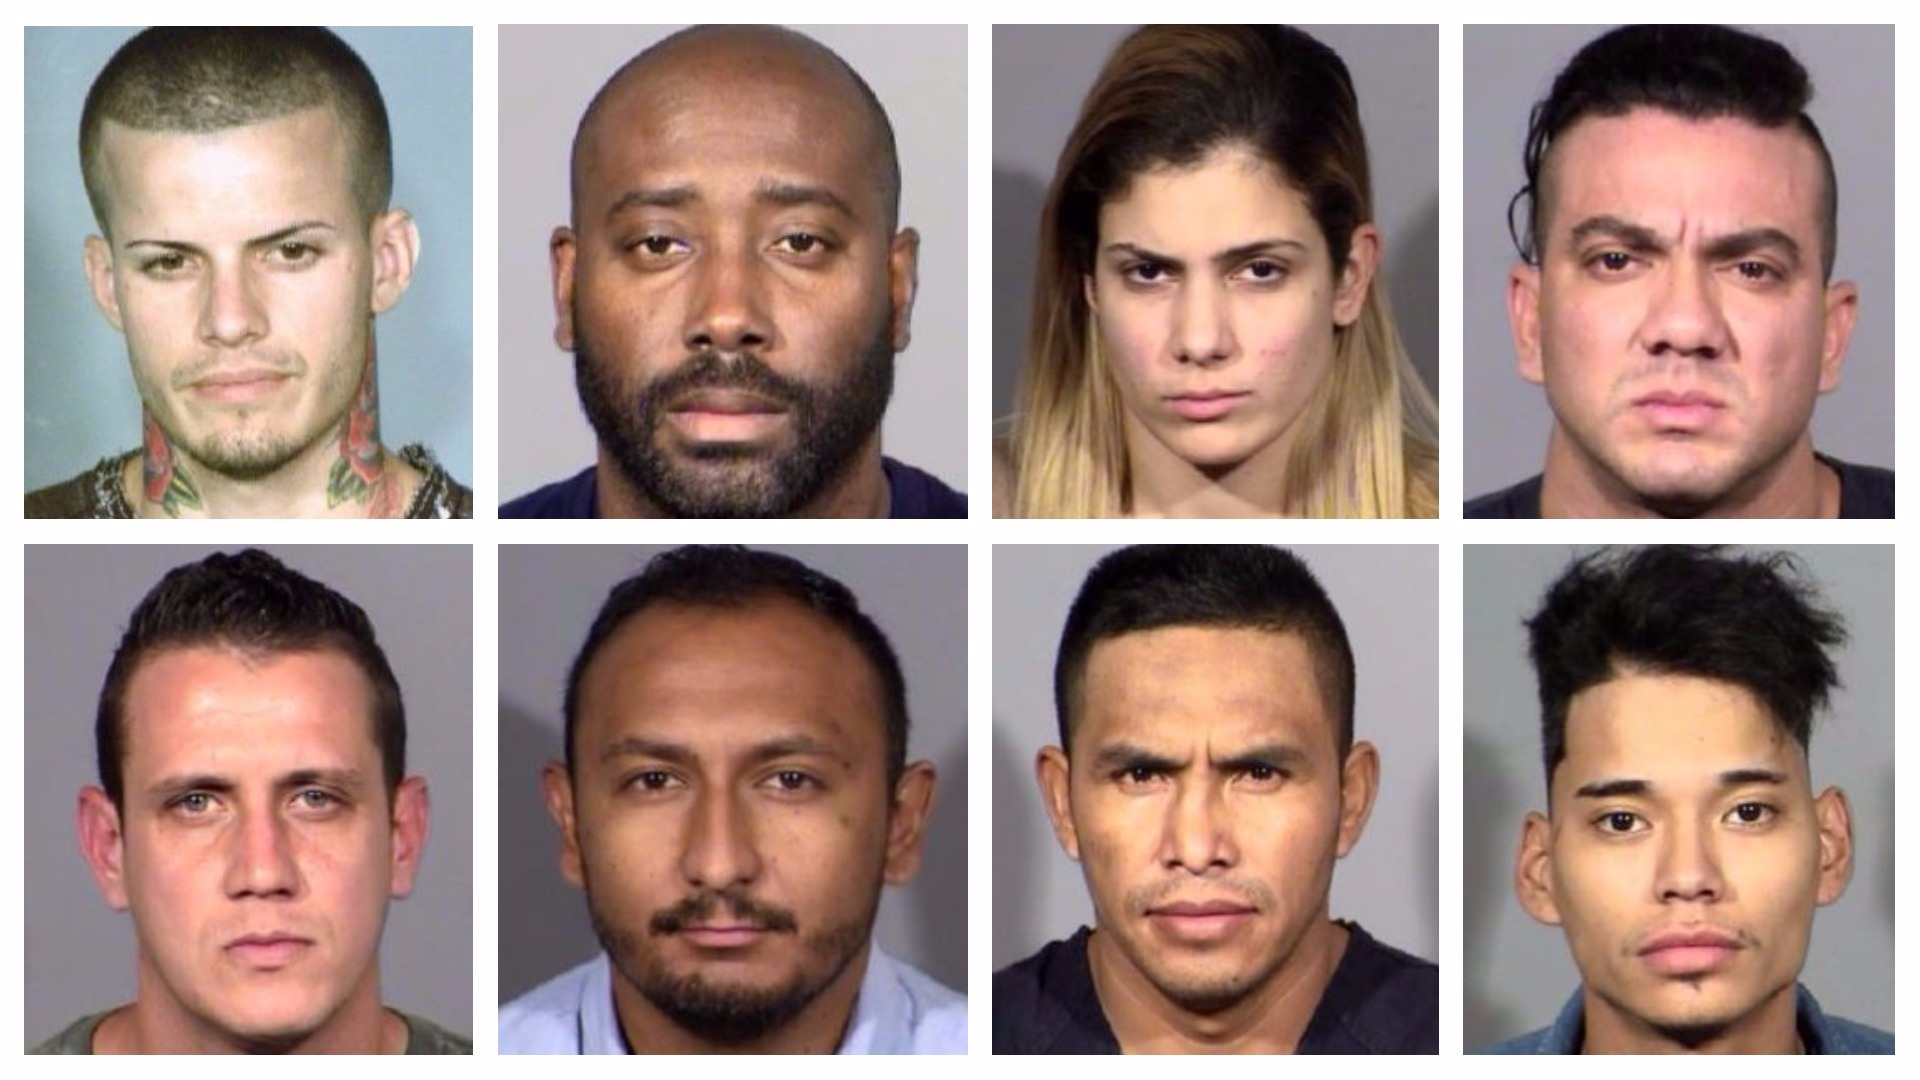 Lemay Oliver Monzon (top, from left); Edgar Betancourt Preval; Loipa Vuelta Arafet; Lian Grave de Peralta Rosales; Jose Alejandro Betancourt (bottom, from left); Jacob Salazar-Morales; Eleuterio Morales Ramirez; Anthony Robles (LVMPD/KSNV)